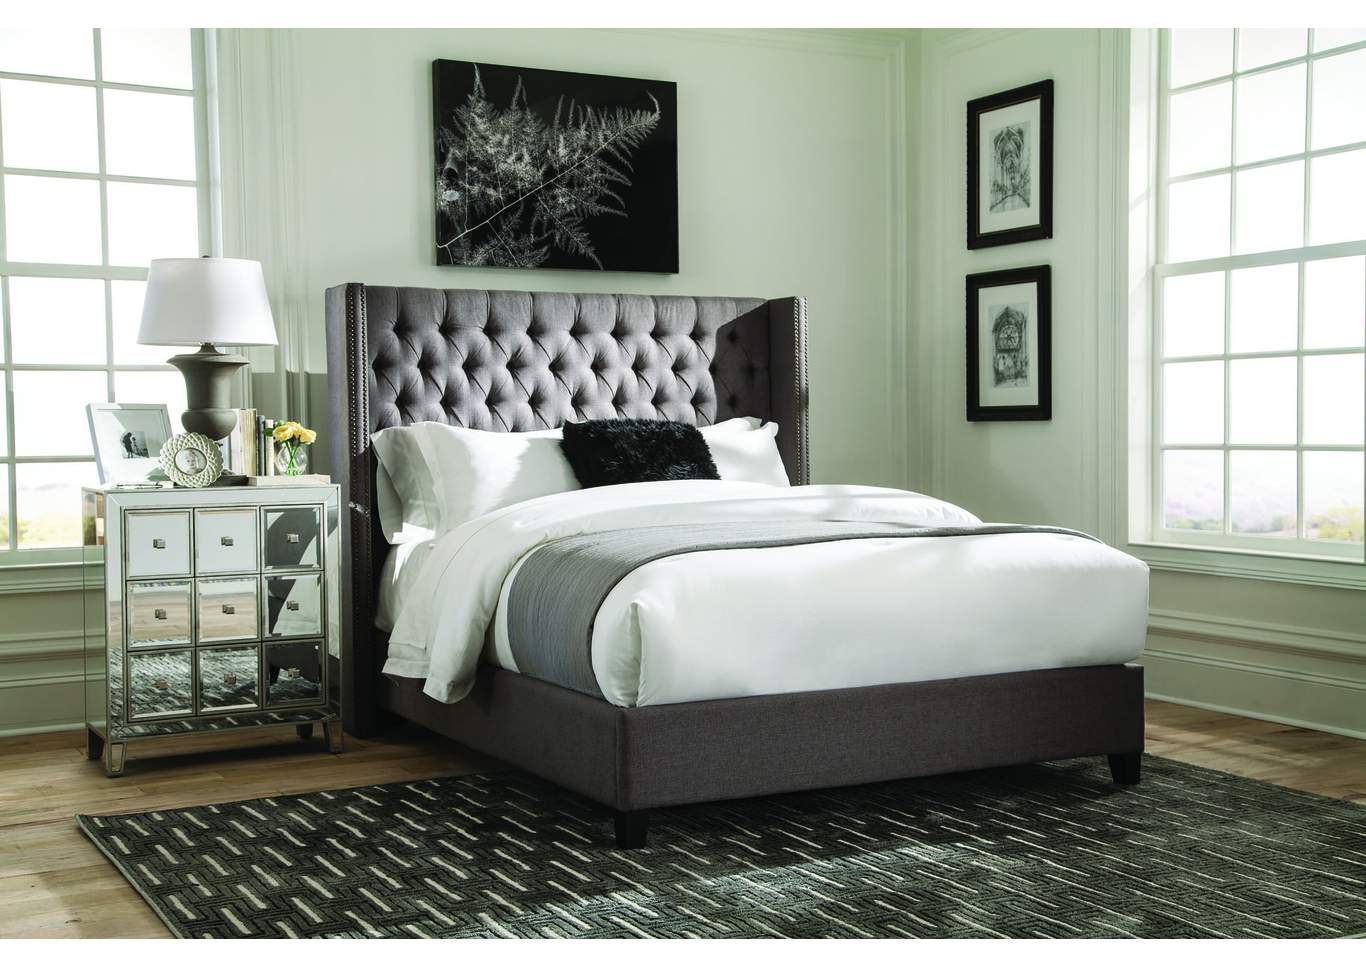 Benicia Grey Upholstered Eastern King Bed,Coaster Furniture